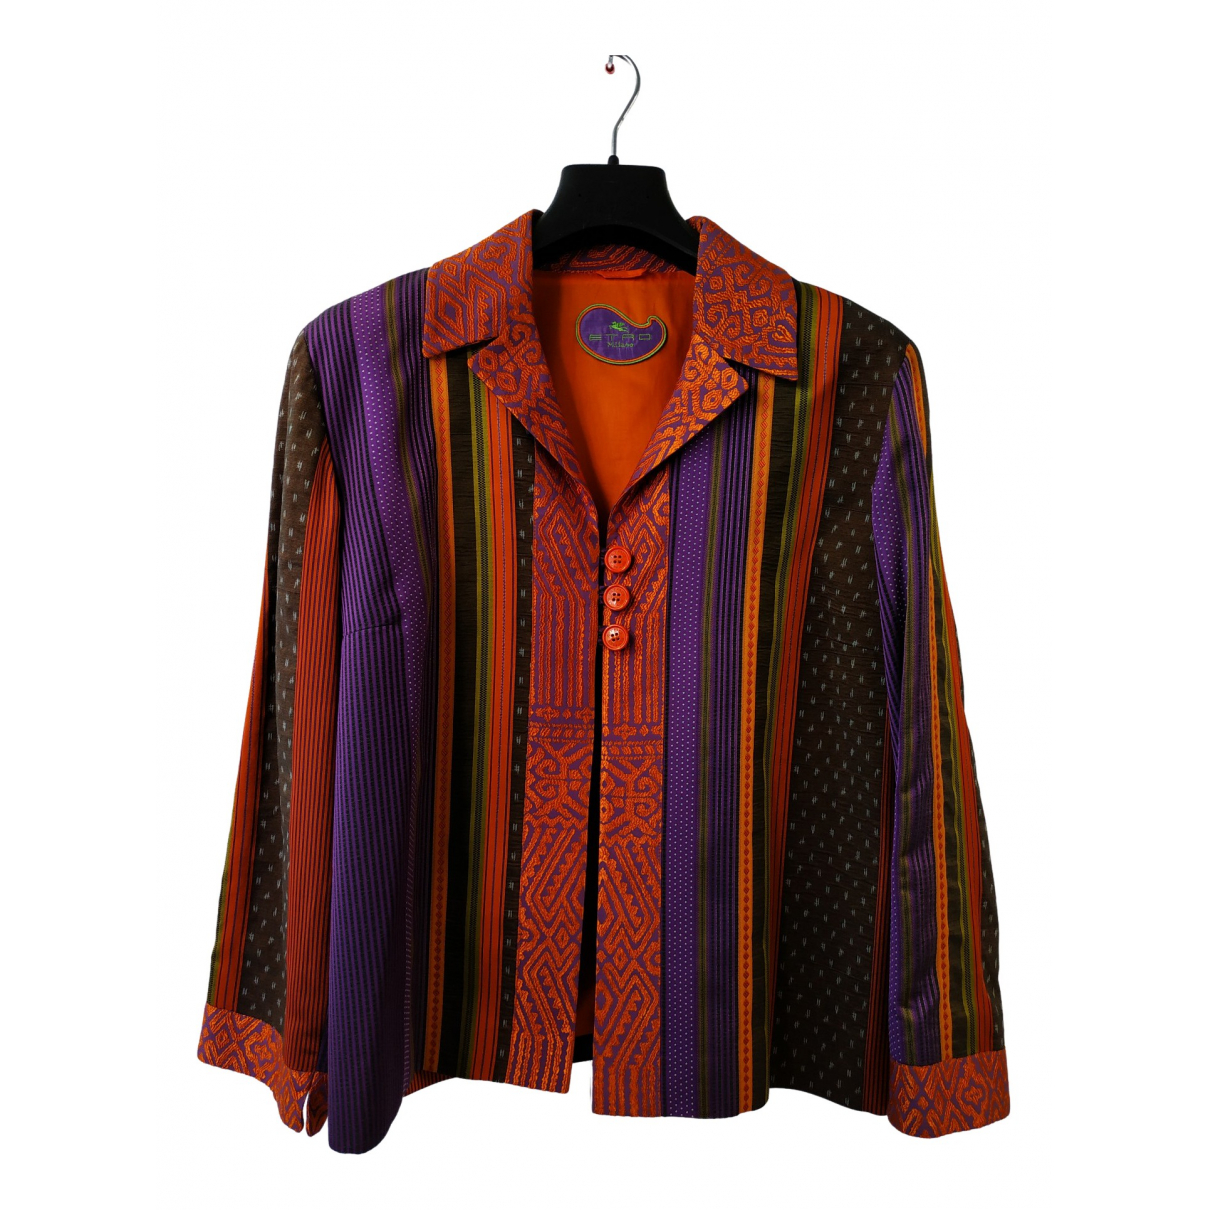 Etro \N Cotton jacket for Women 48 FR